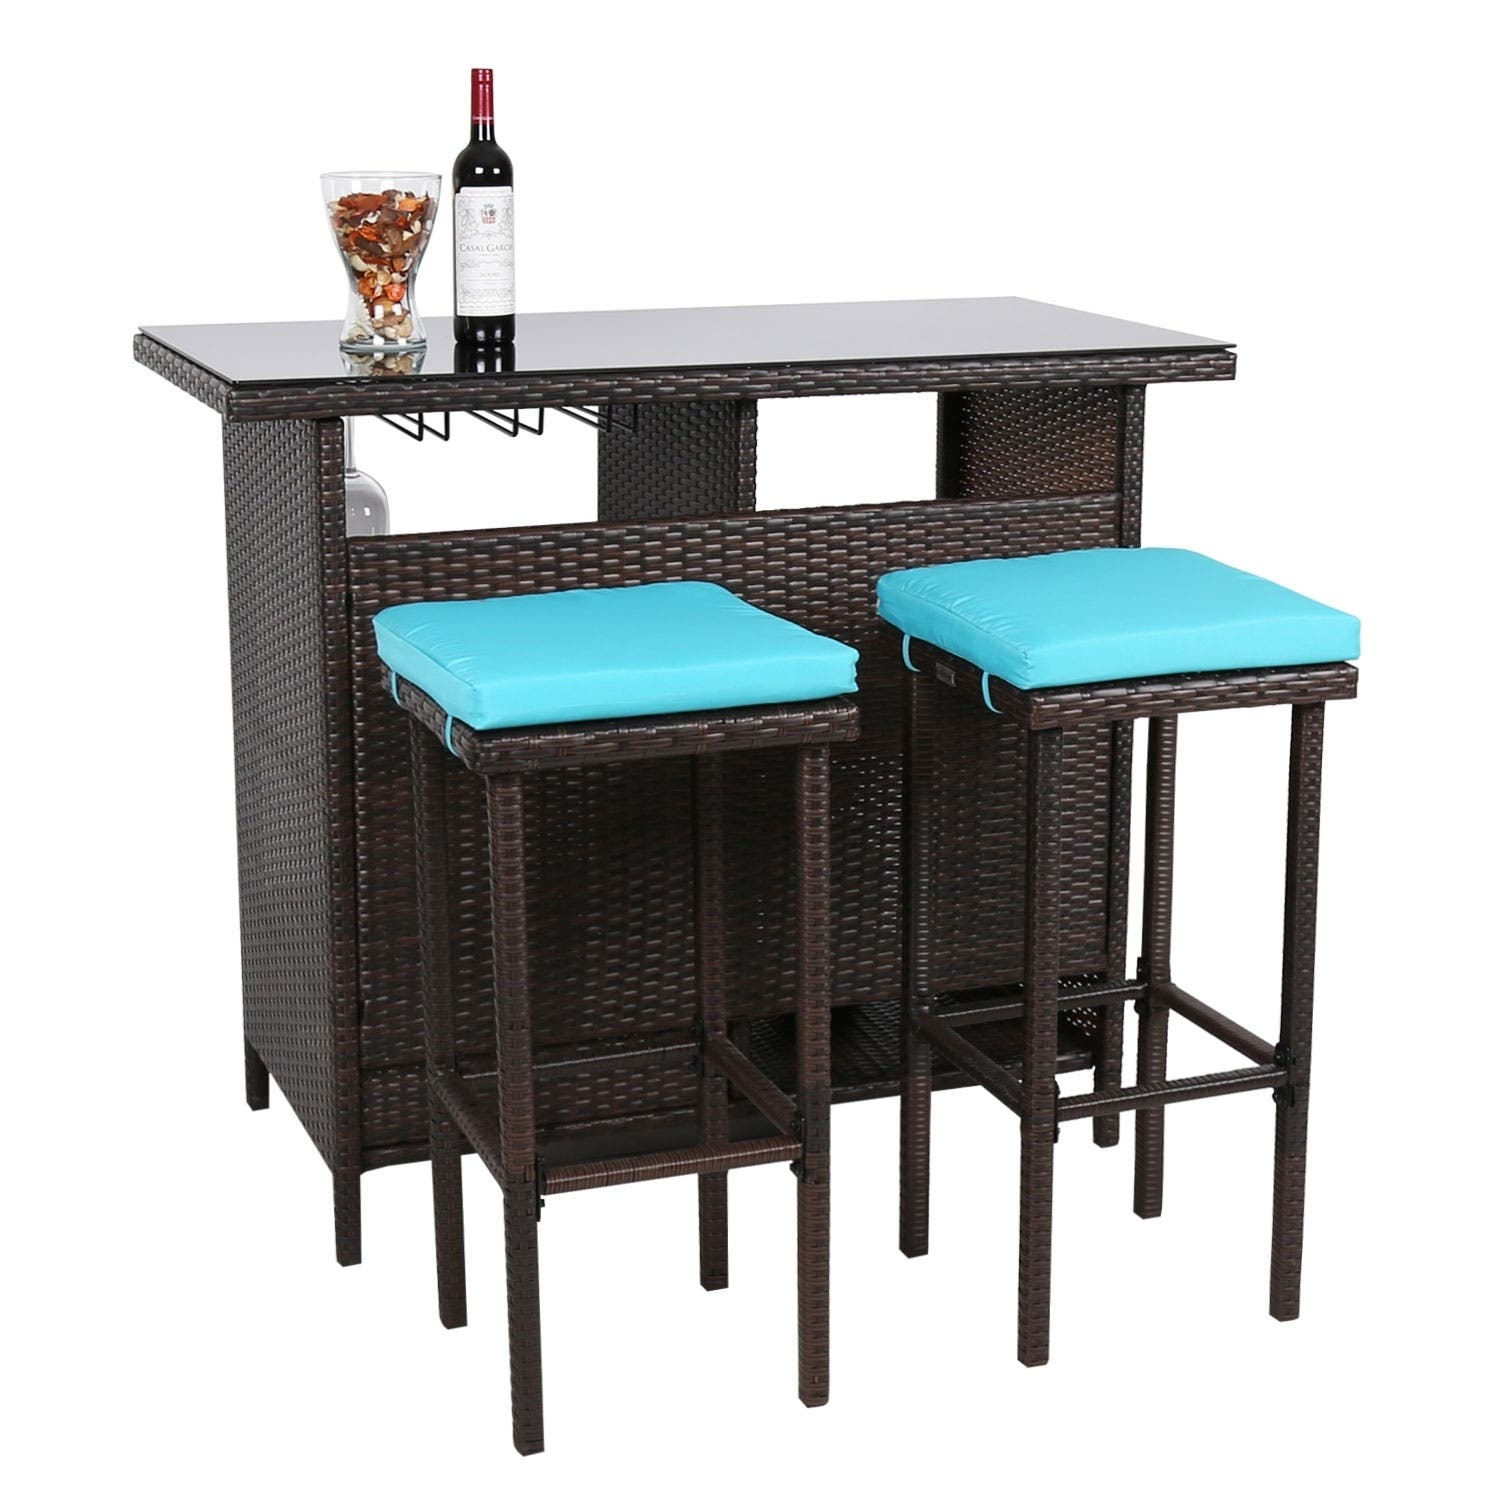 Dining Sets Online: Buy Outdoor Dining Sets Online At Overstock